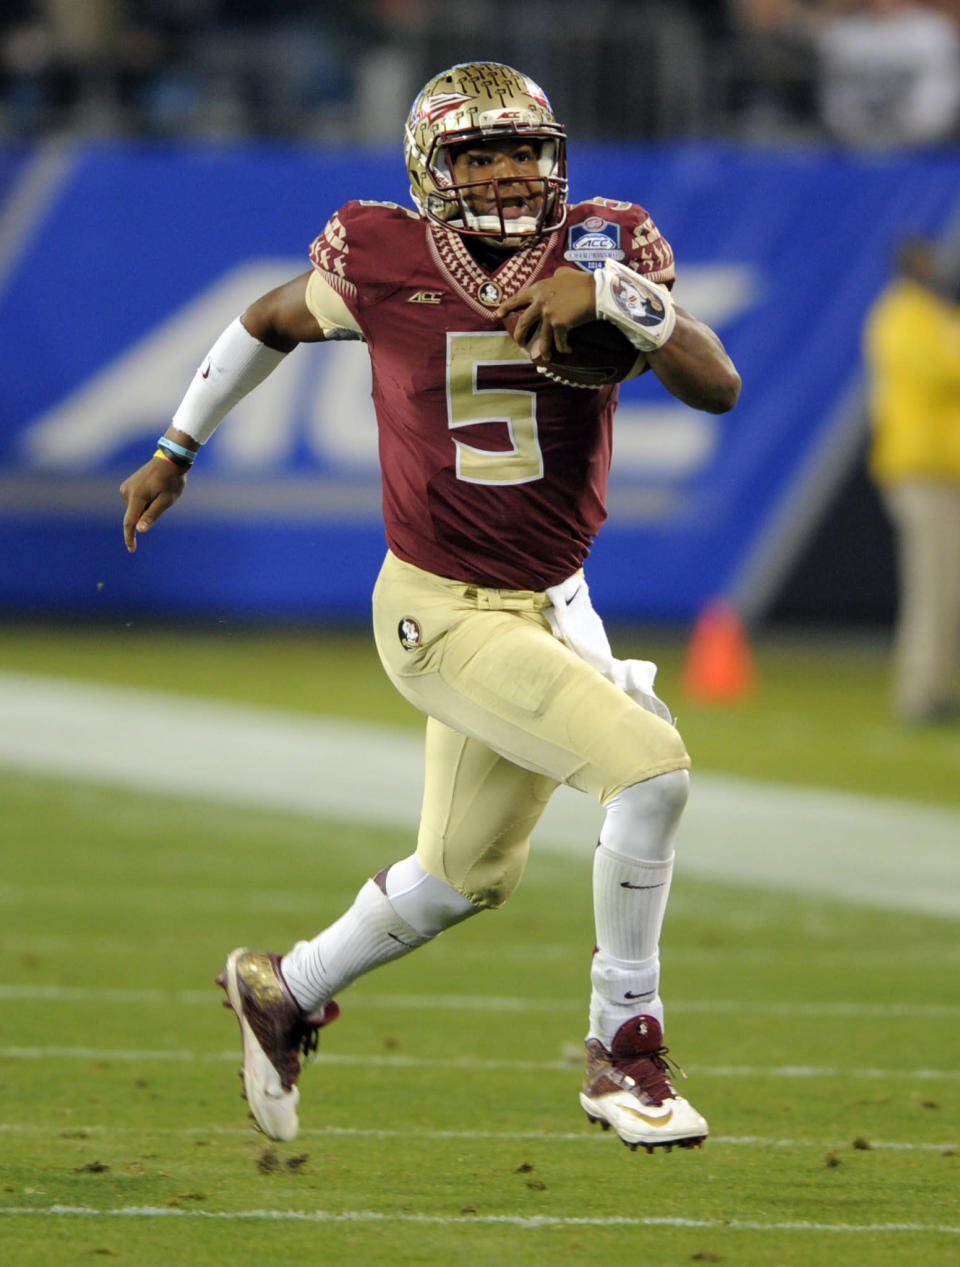 Florida State quarterback Jameis Winston (5) scrambles for a long gain against Georgia Tech during the first half of the Atlantic Coast Conference championship NCAA college football game in Charlotte, N.C., Saturday, Dec. 6, 2014. (AP Photo/Mike McCarn)